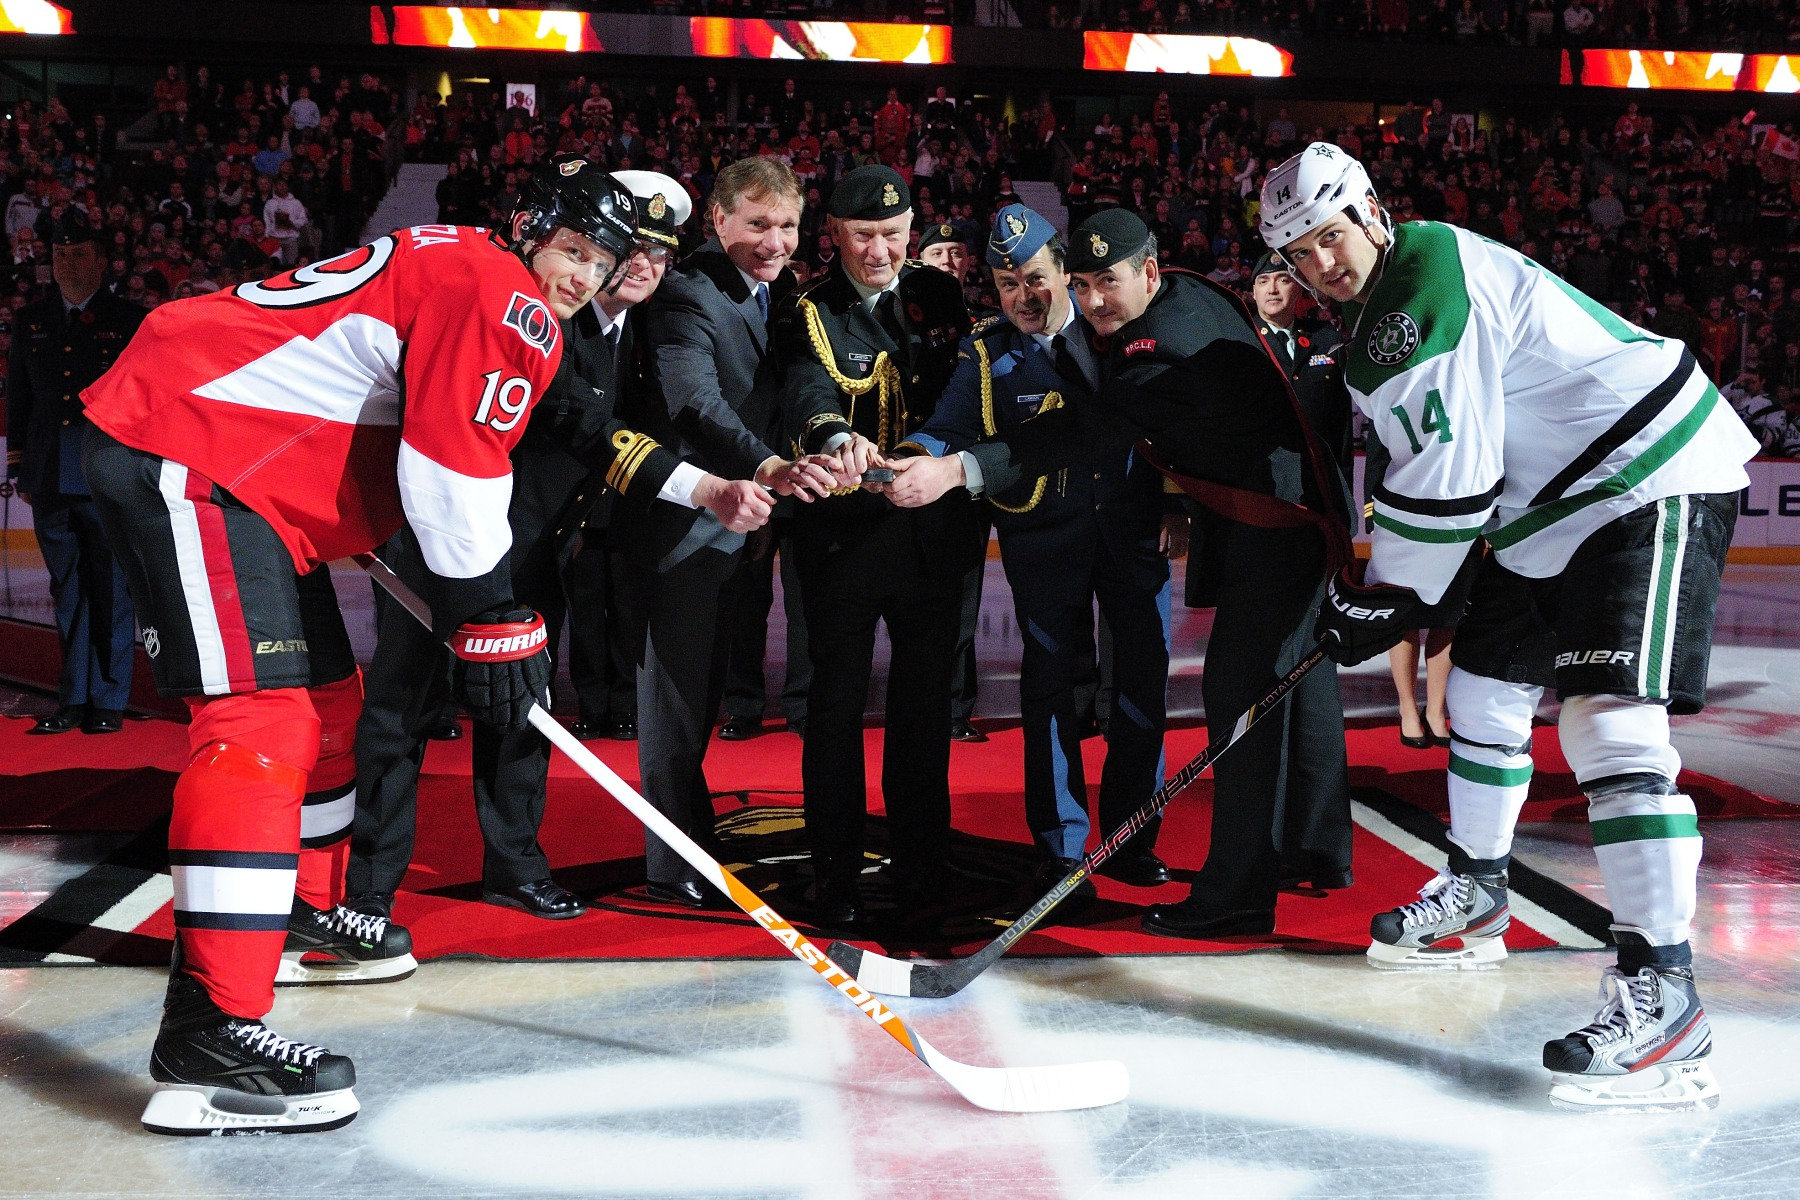 On this occasion, His Excellency, as Commander-in-Chief, and General Tom Lawson participated in the ceremonial puck drop at the beginning of the Ottawa Senators' game against the Dallas Stars.